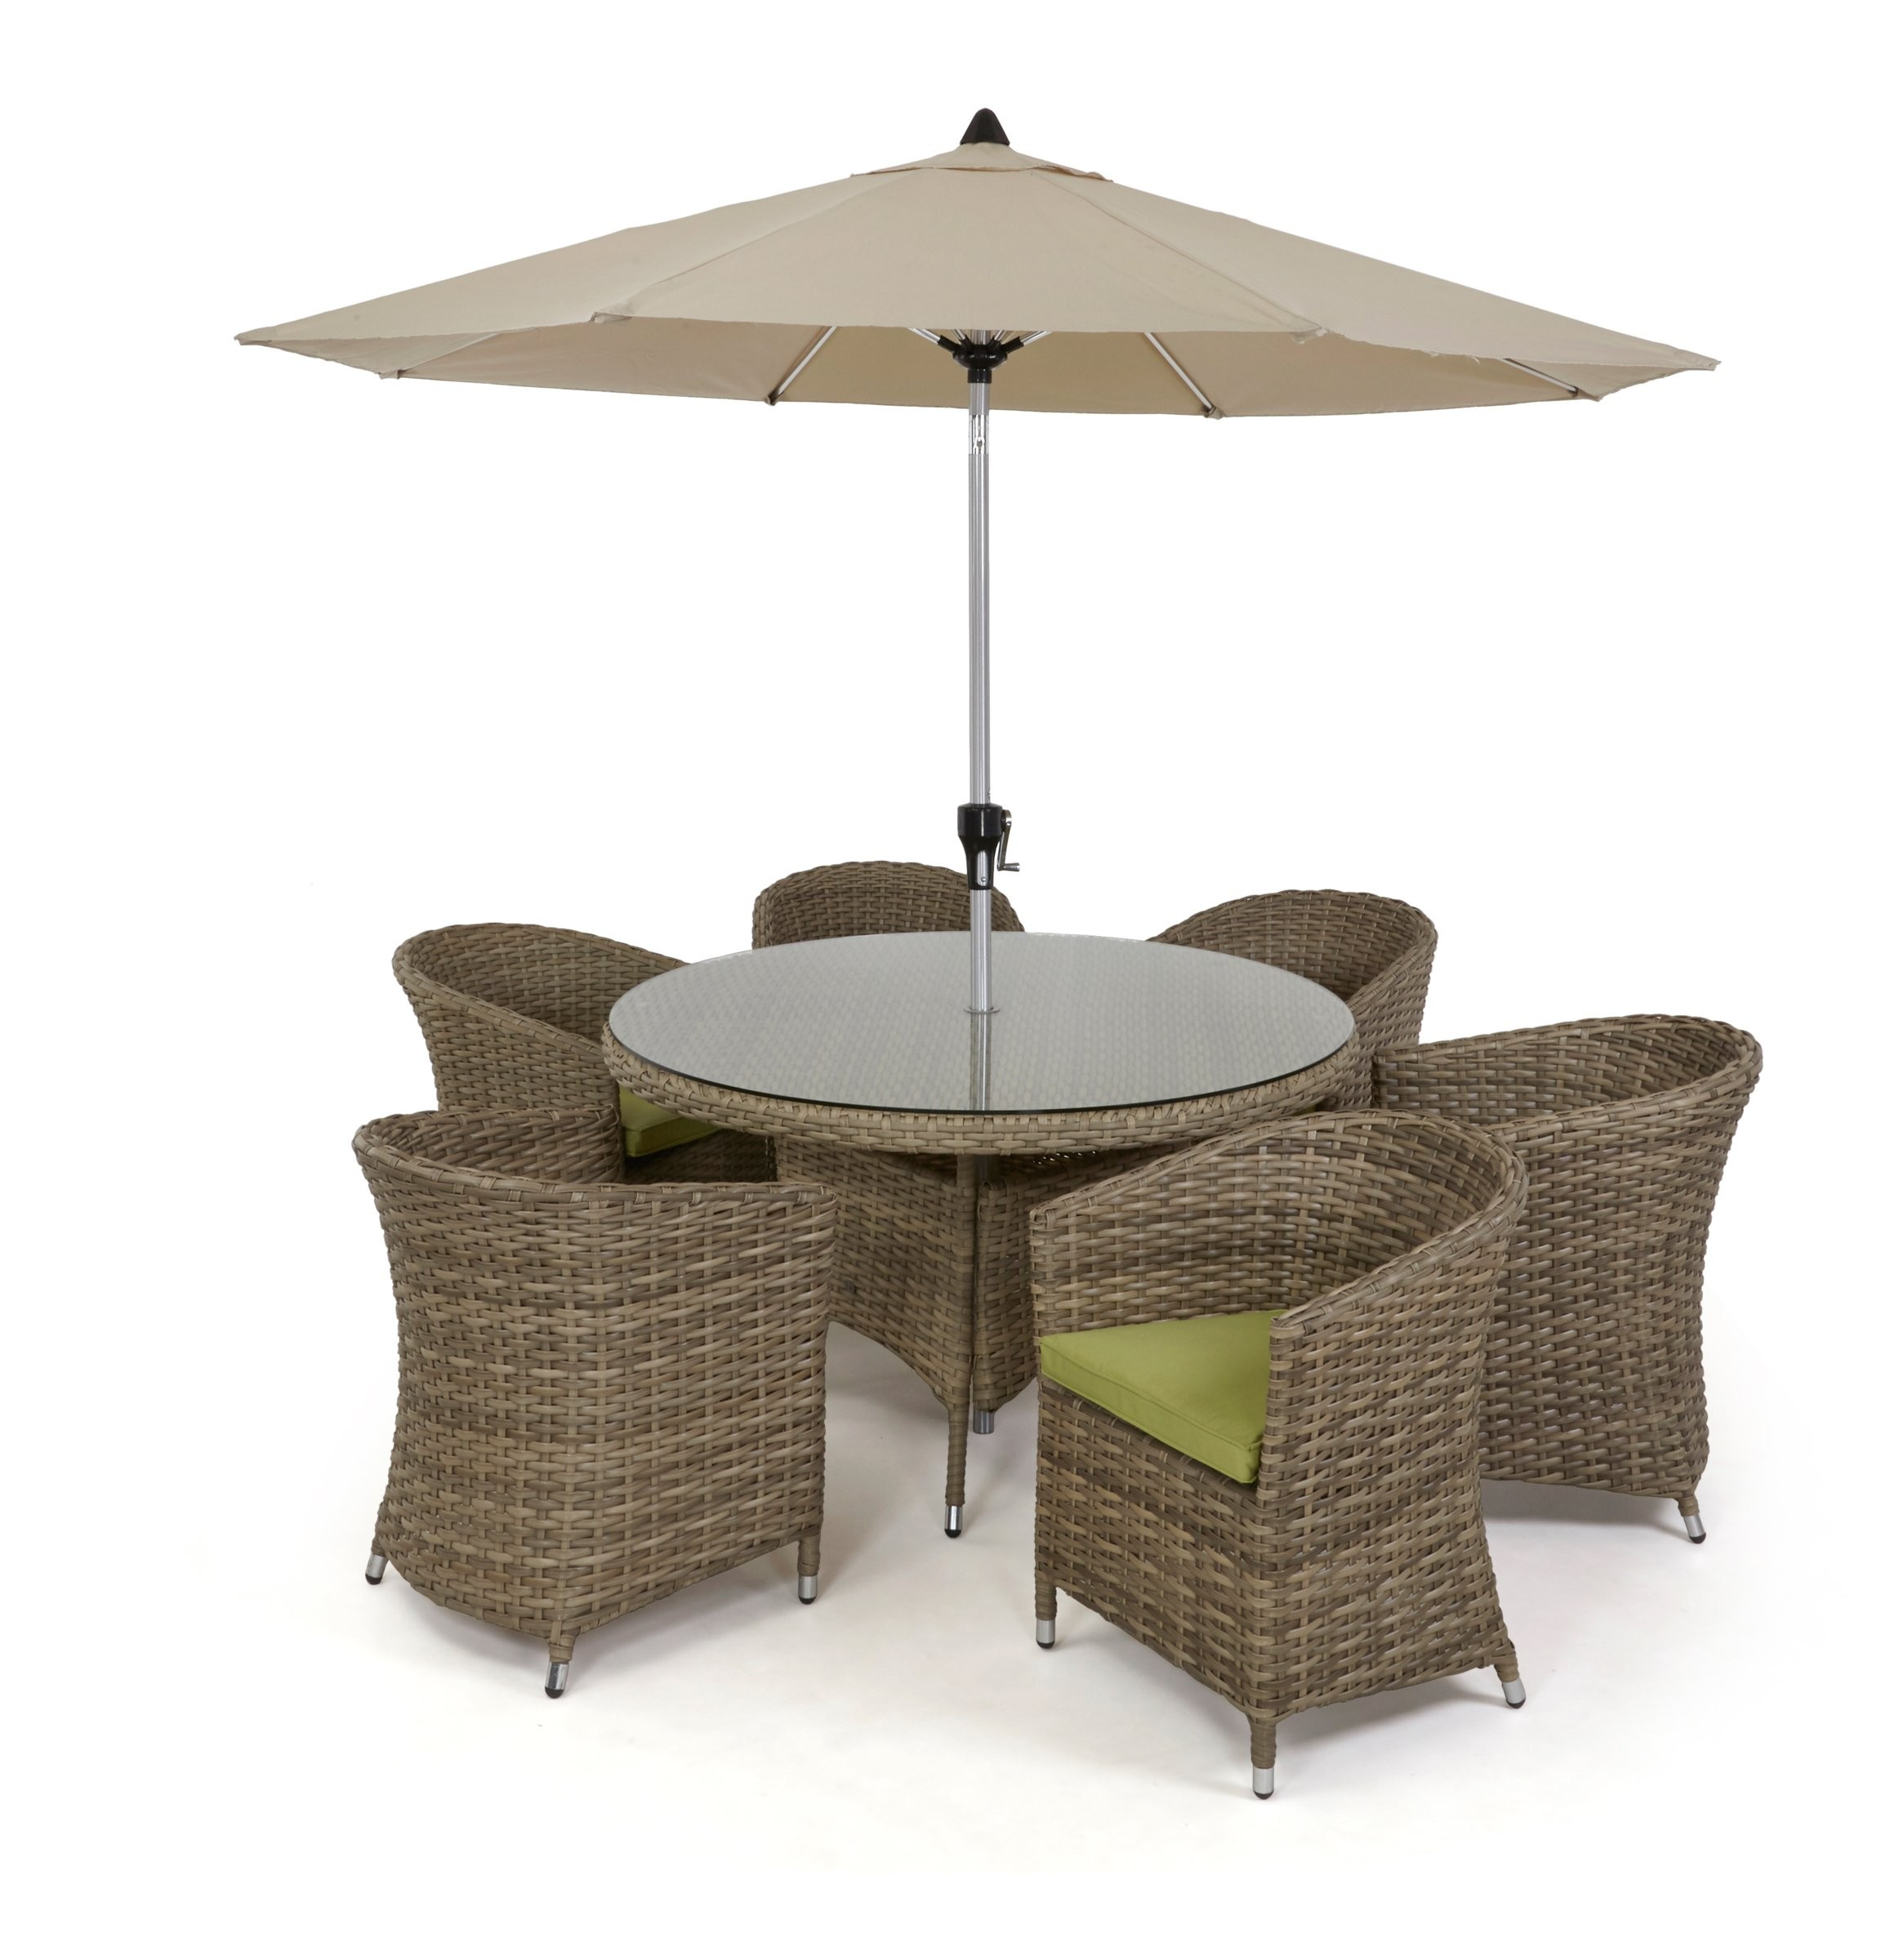 maze rattan natural milan corner sofa set green cushions toddler flip out kmart 6 seat dining with rounded